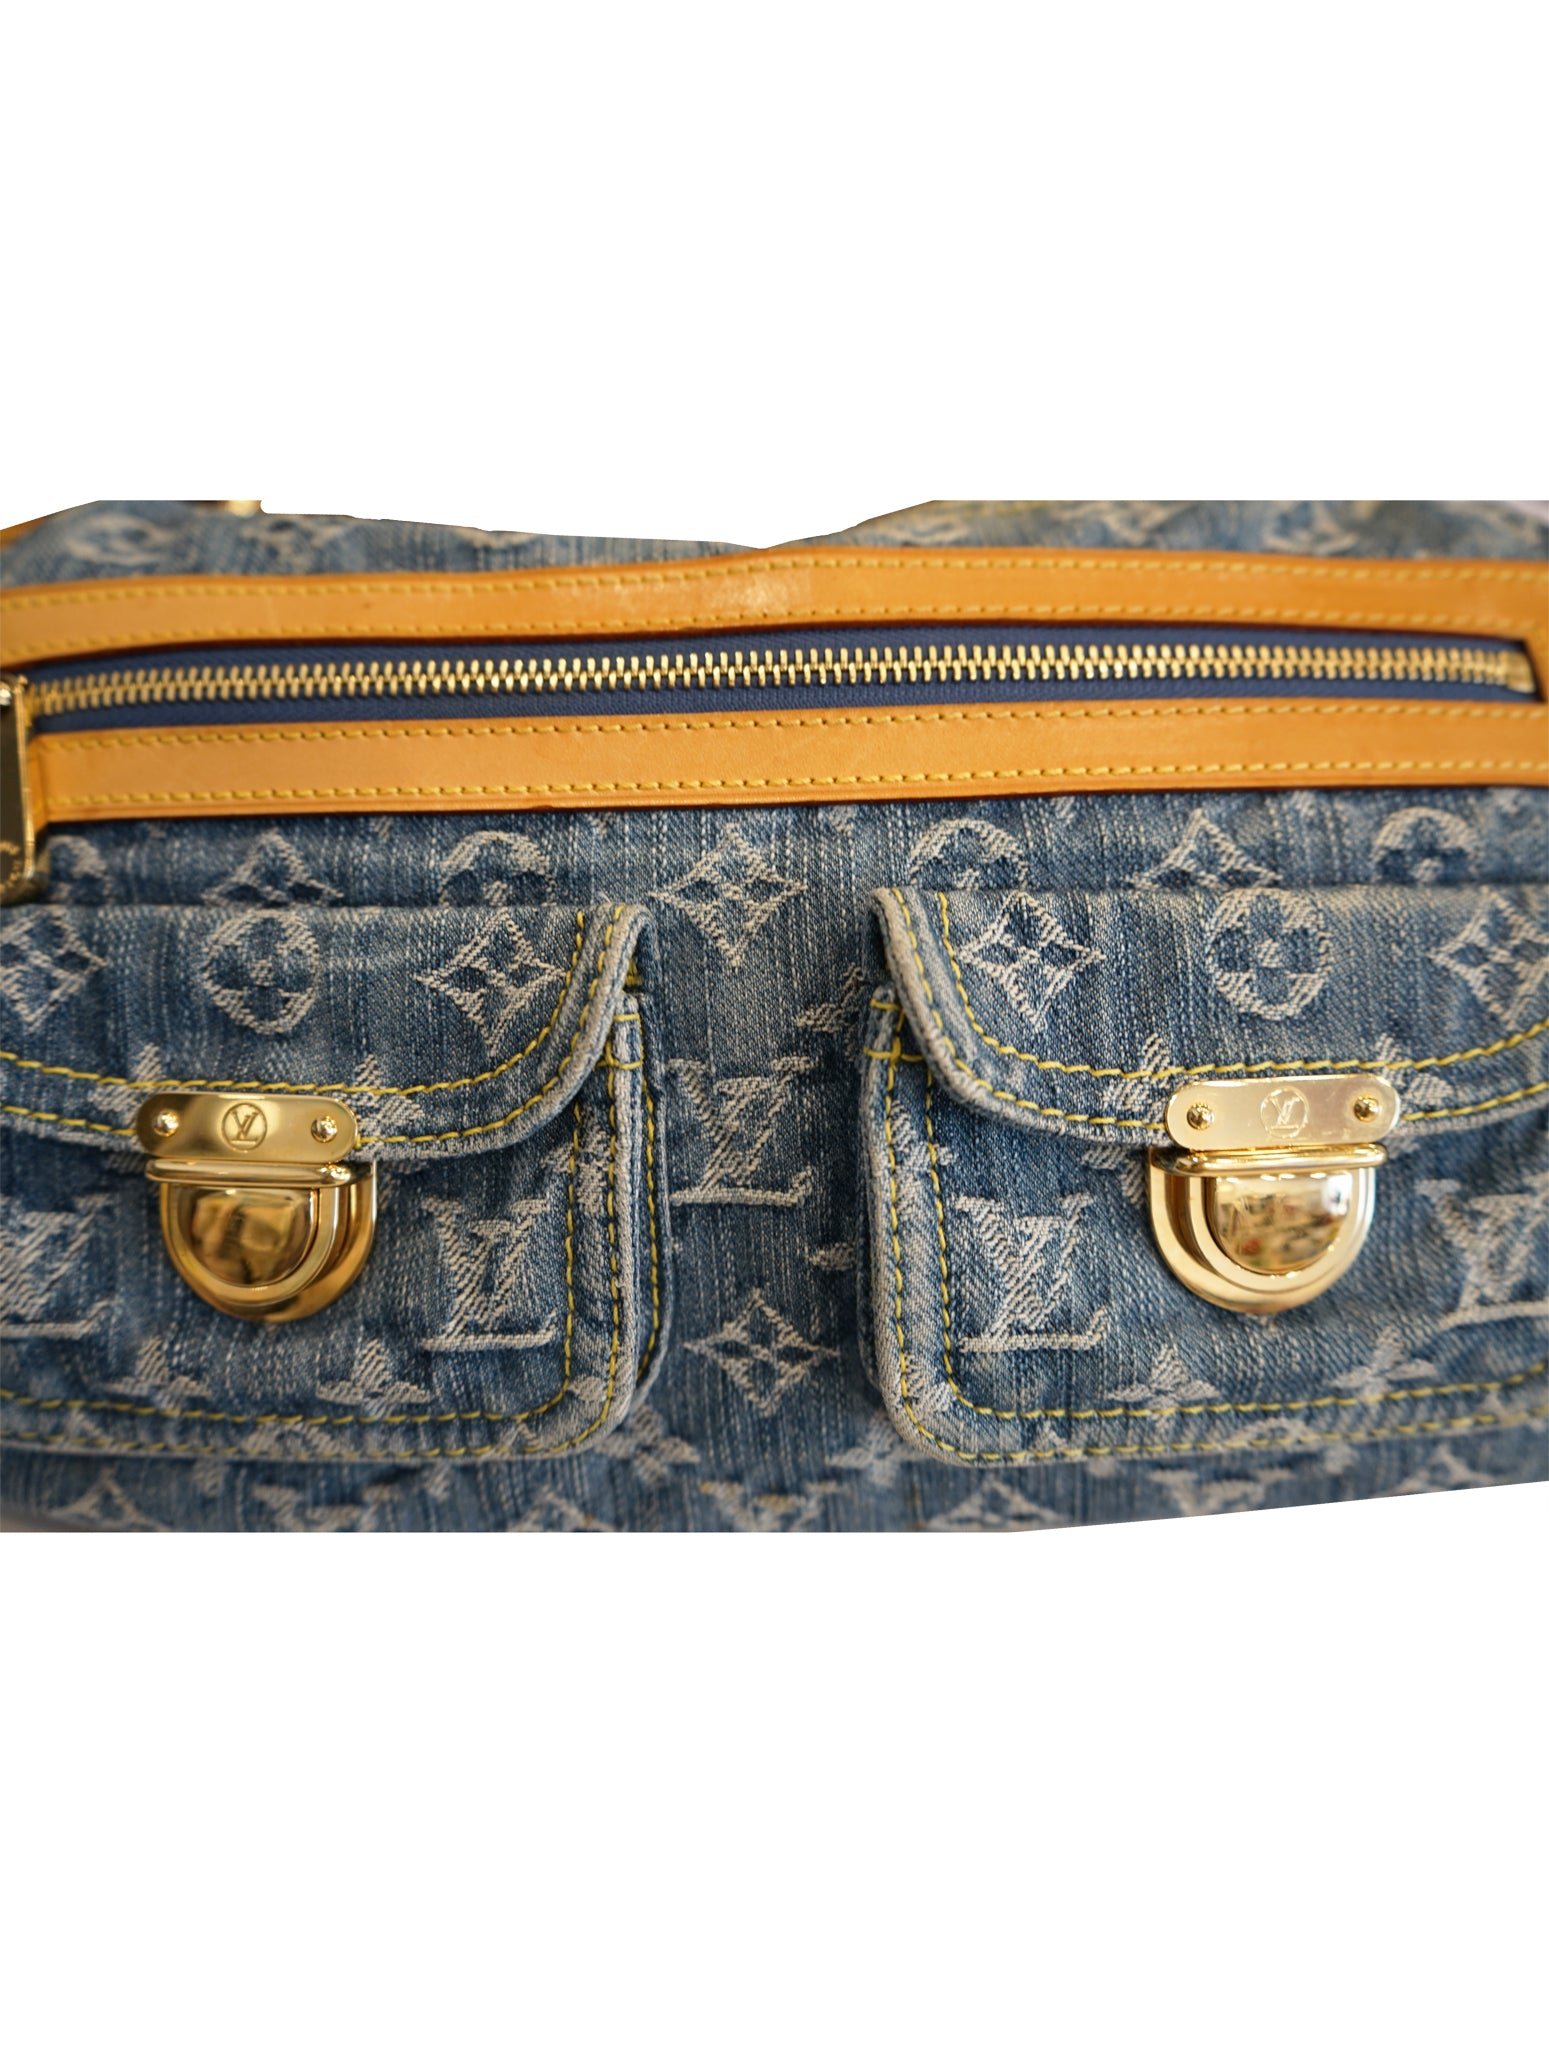 MONOGRAM DENIM BAGGY PM BAG